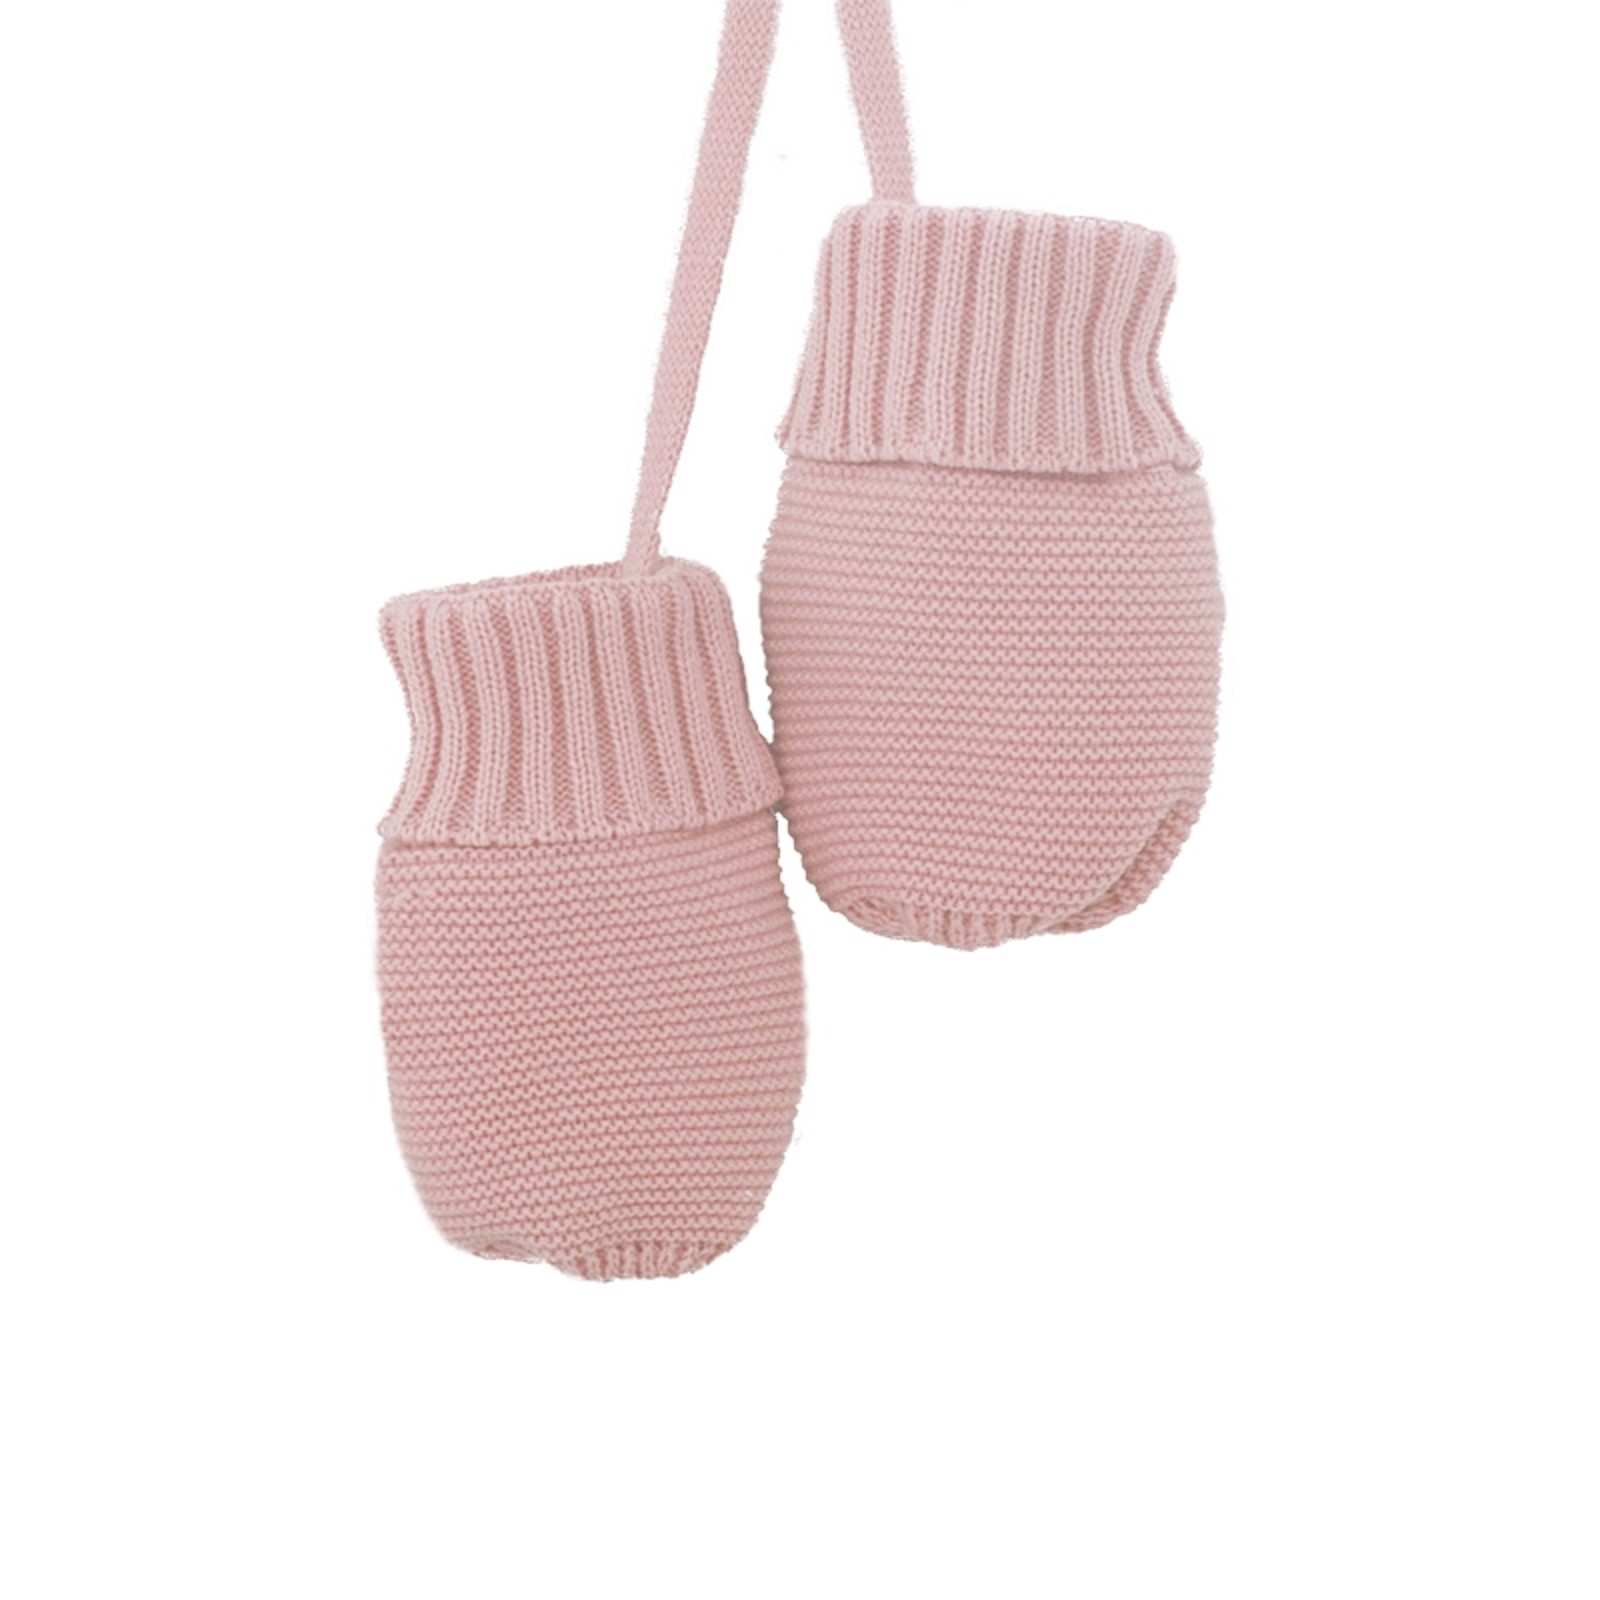 PUPILL Rukavice bez palce light pink 0-6m